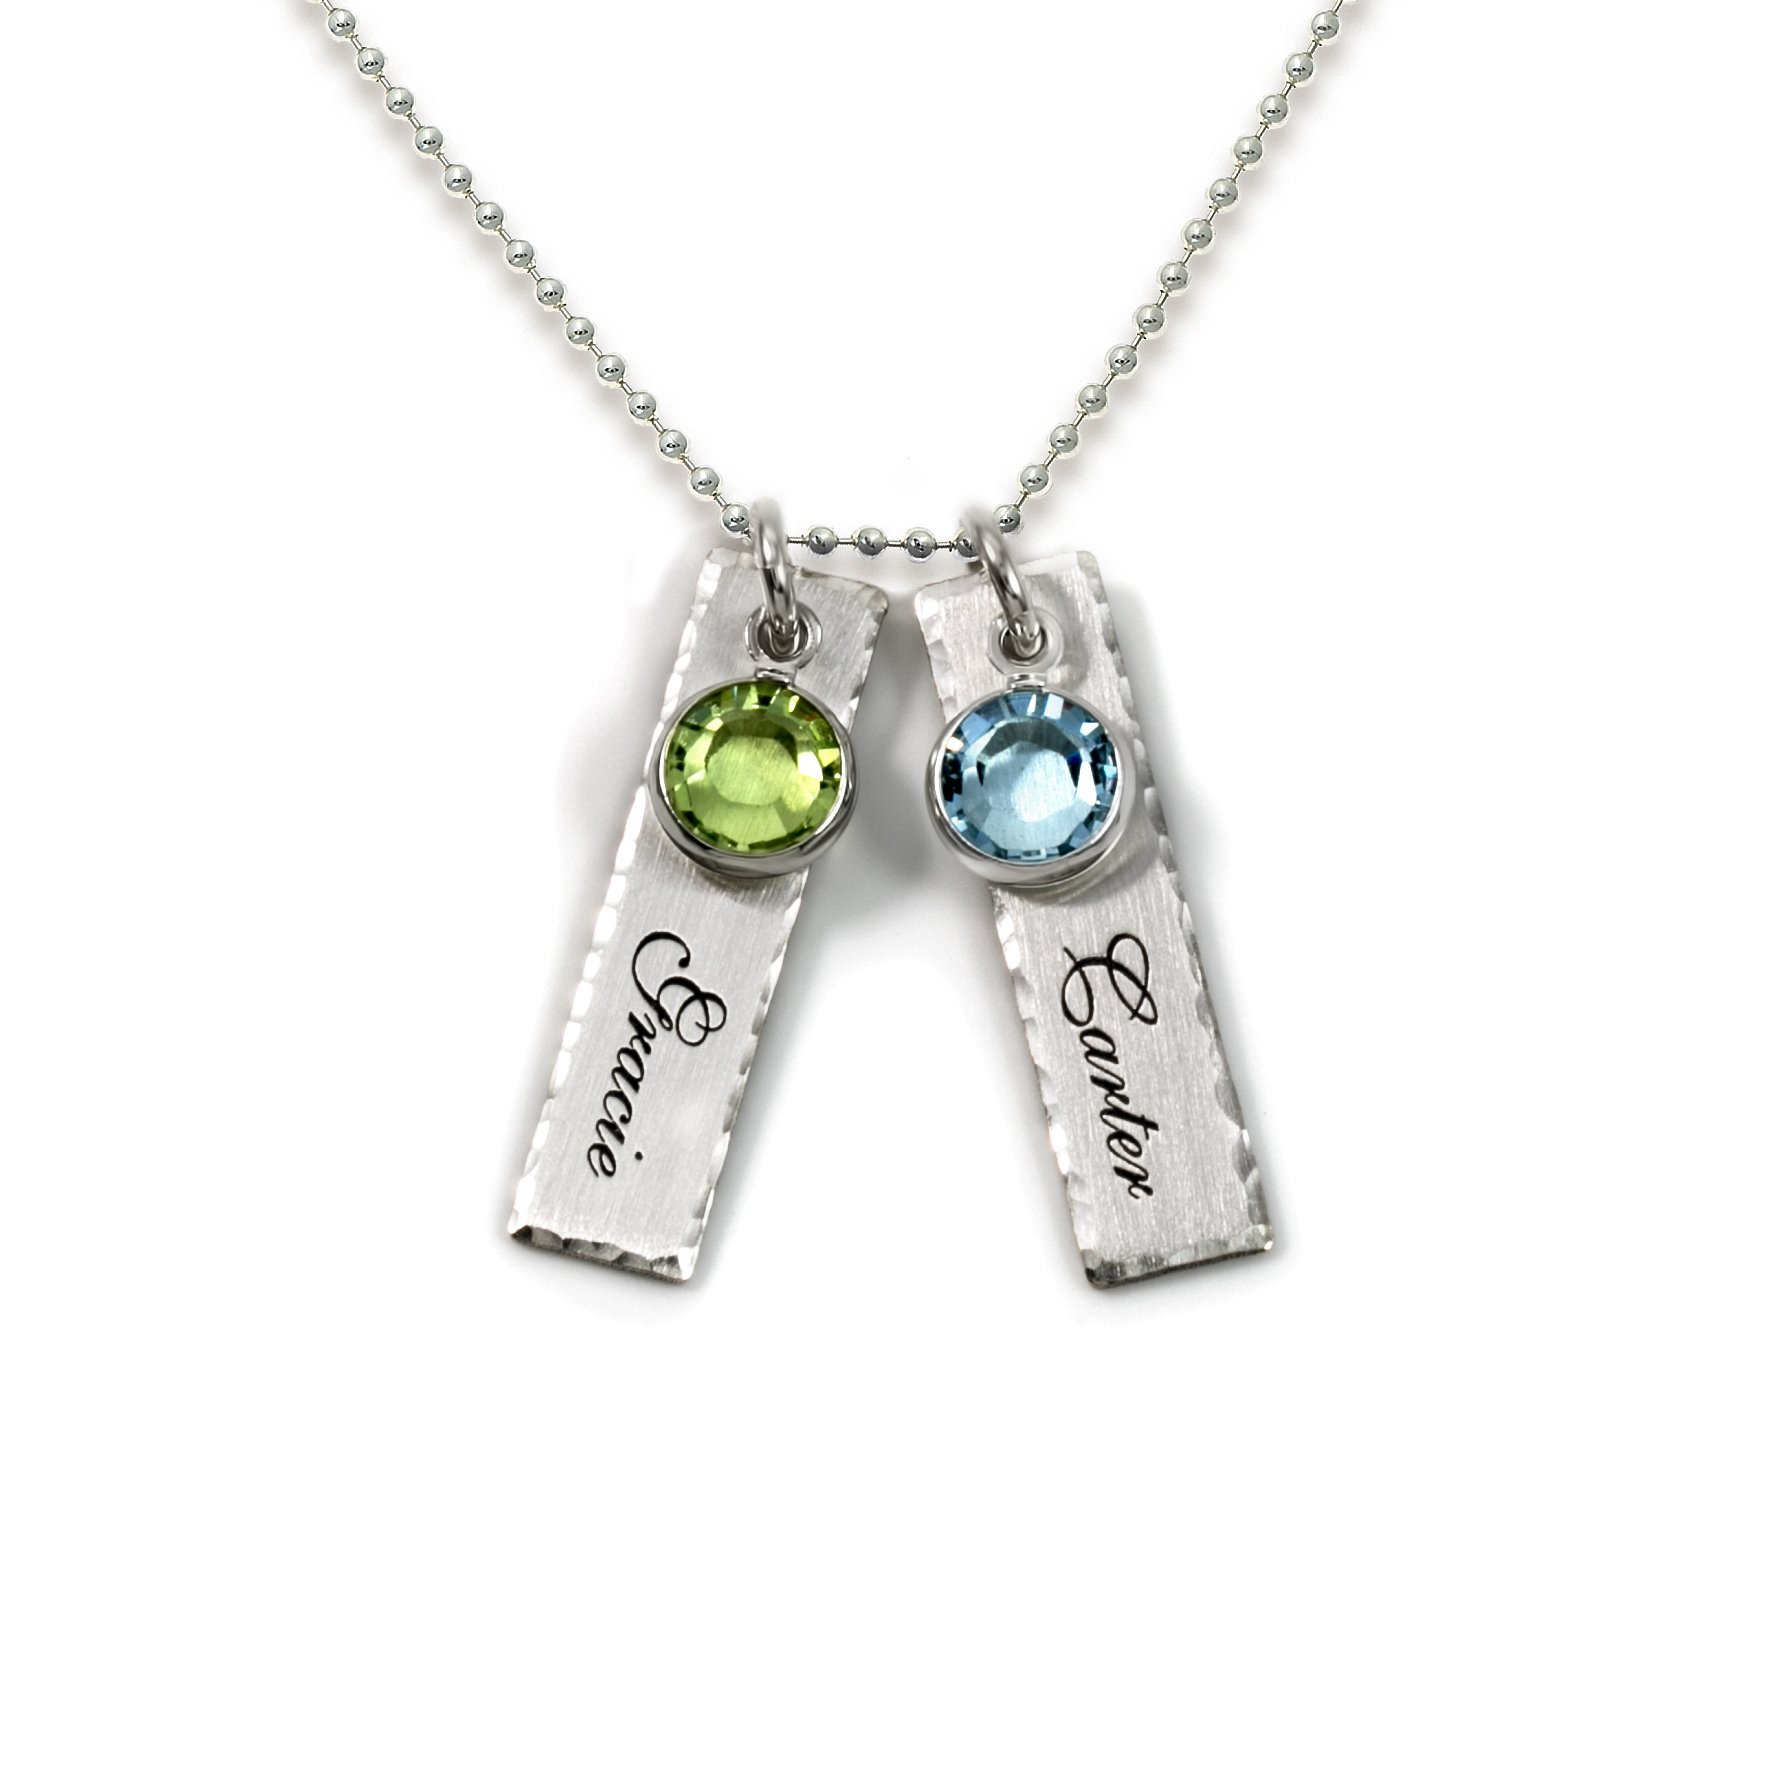 be94a9444 Get Quotations · Unity in Two Personalized Charm Necklace. Customize 2  Sterling Silver Rectangular Pendants with Names of